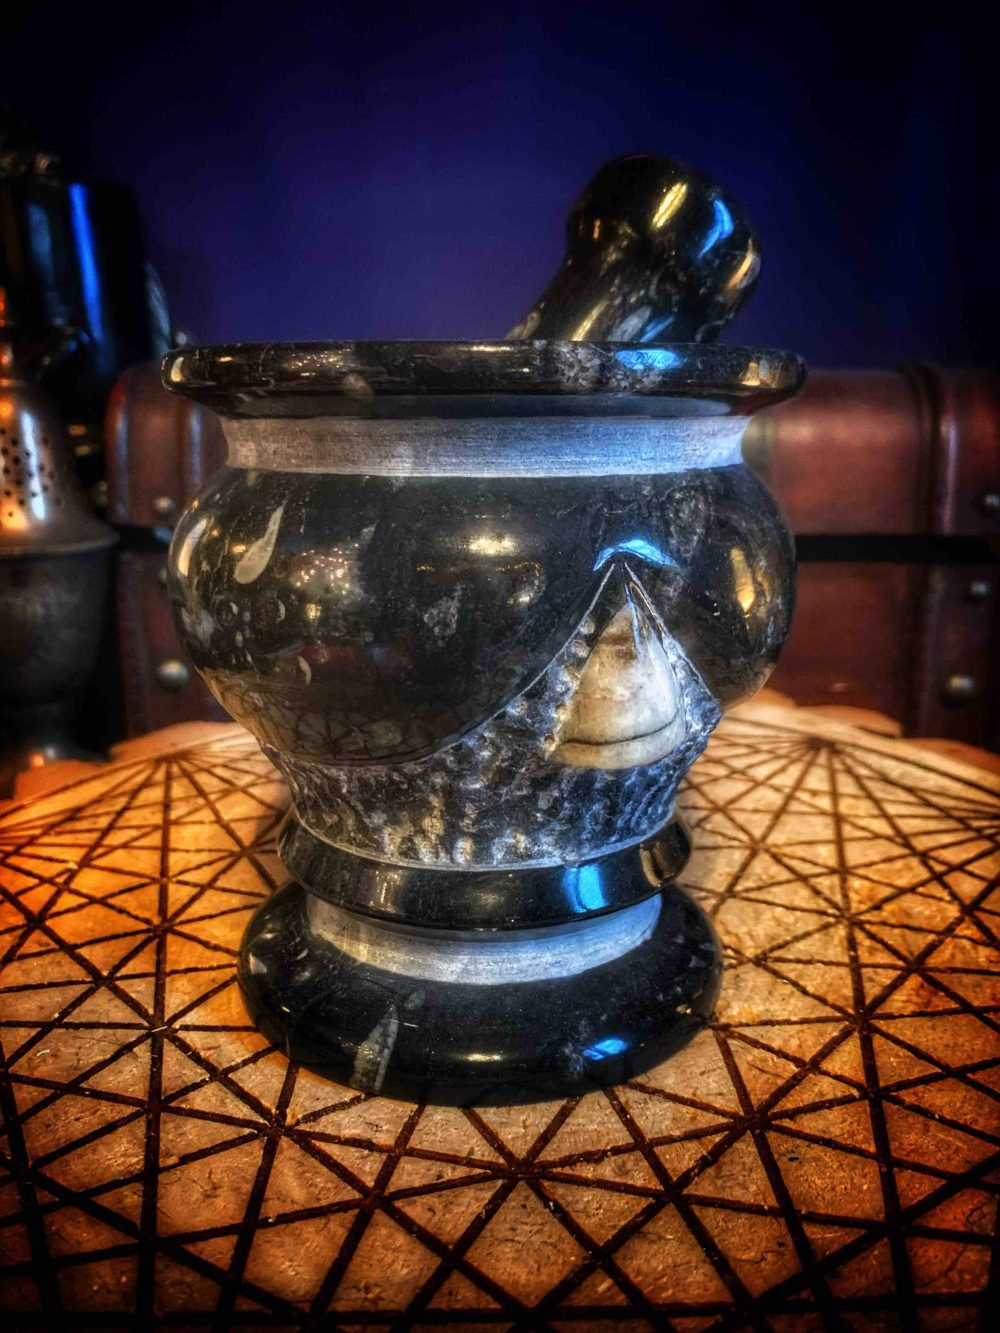 The Sea Witch Mortar & Pestle